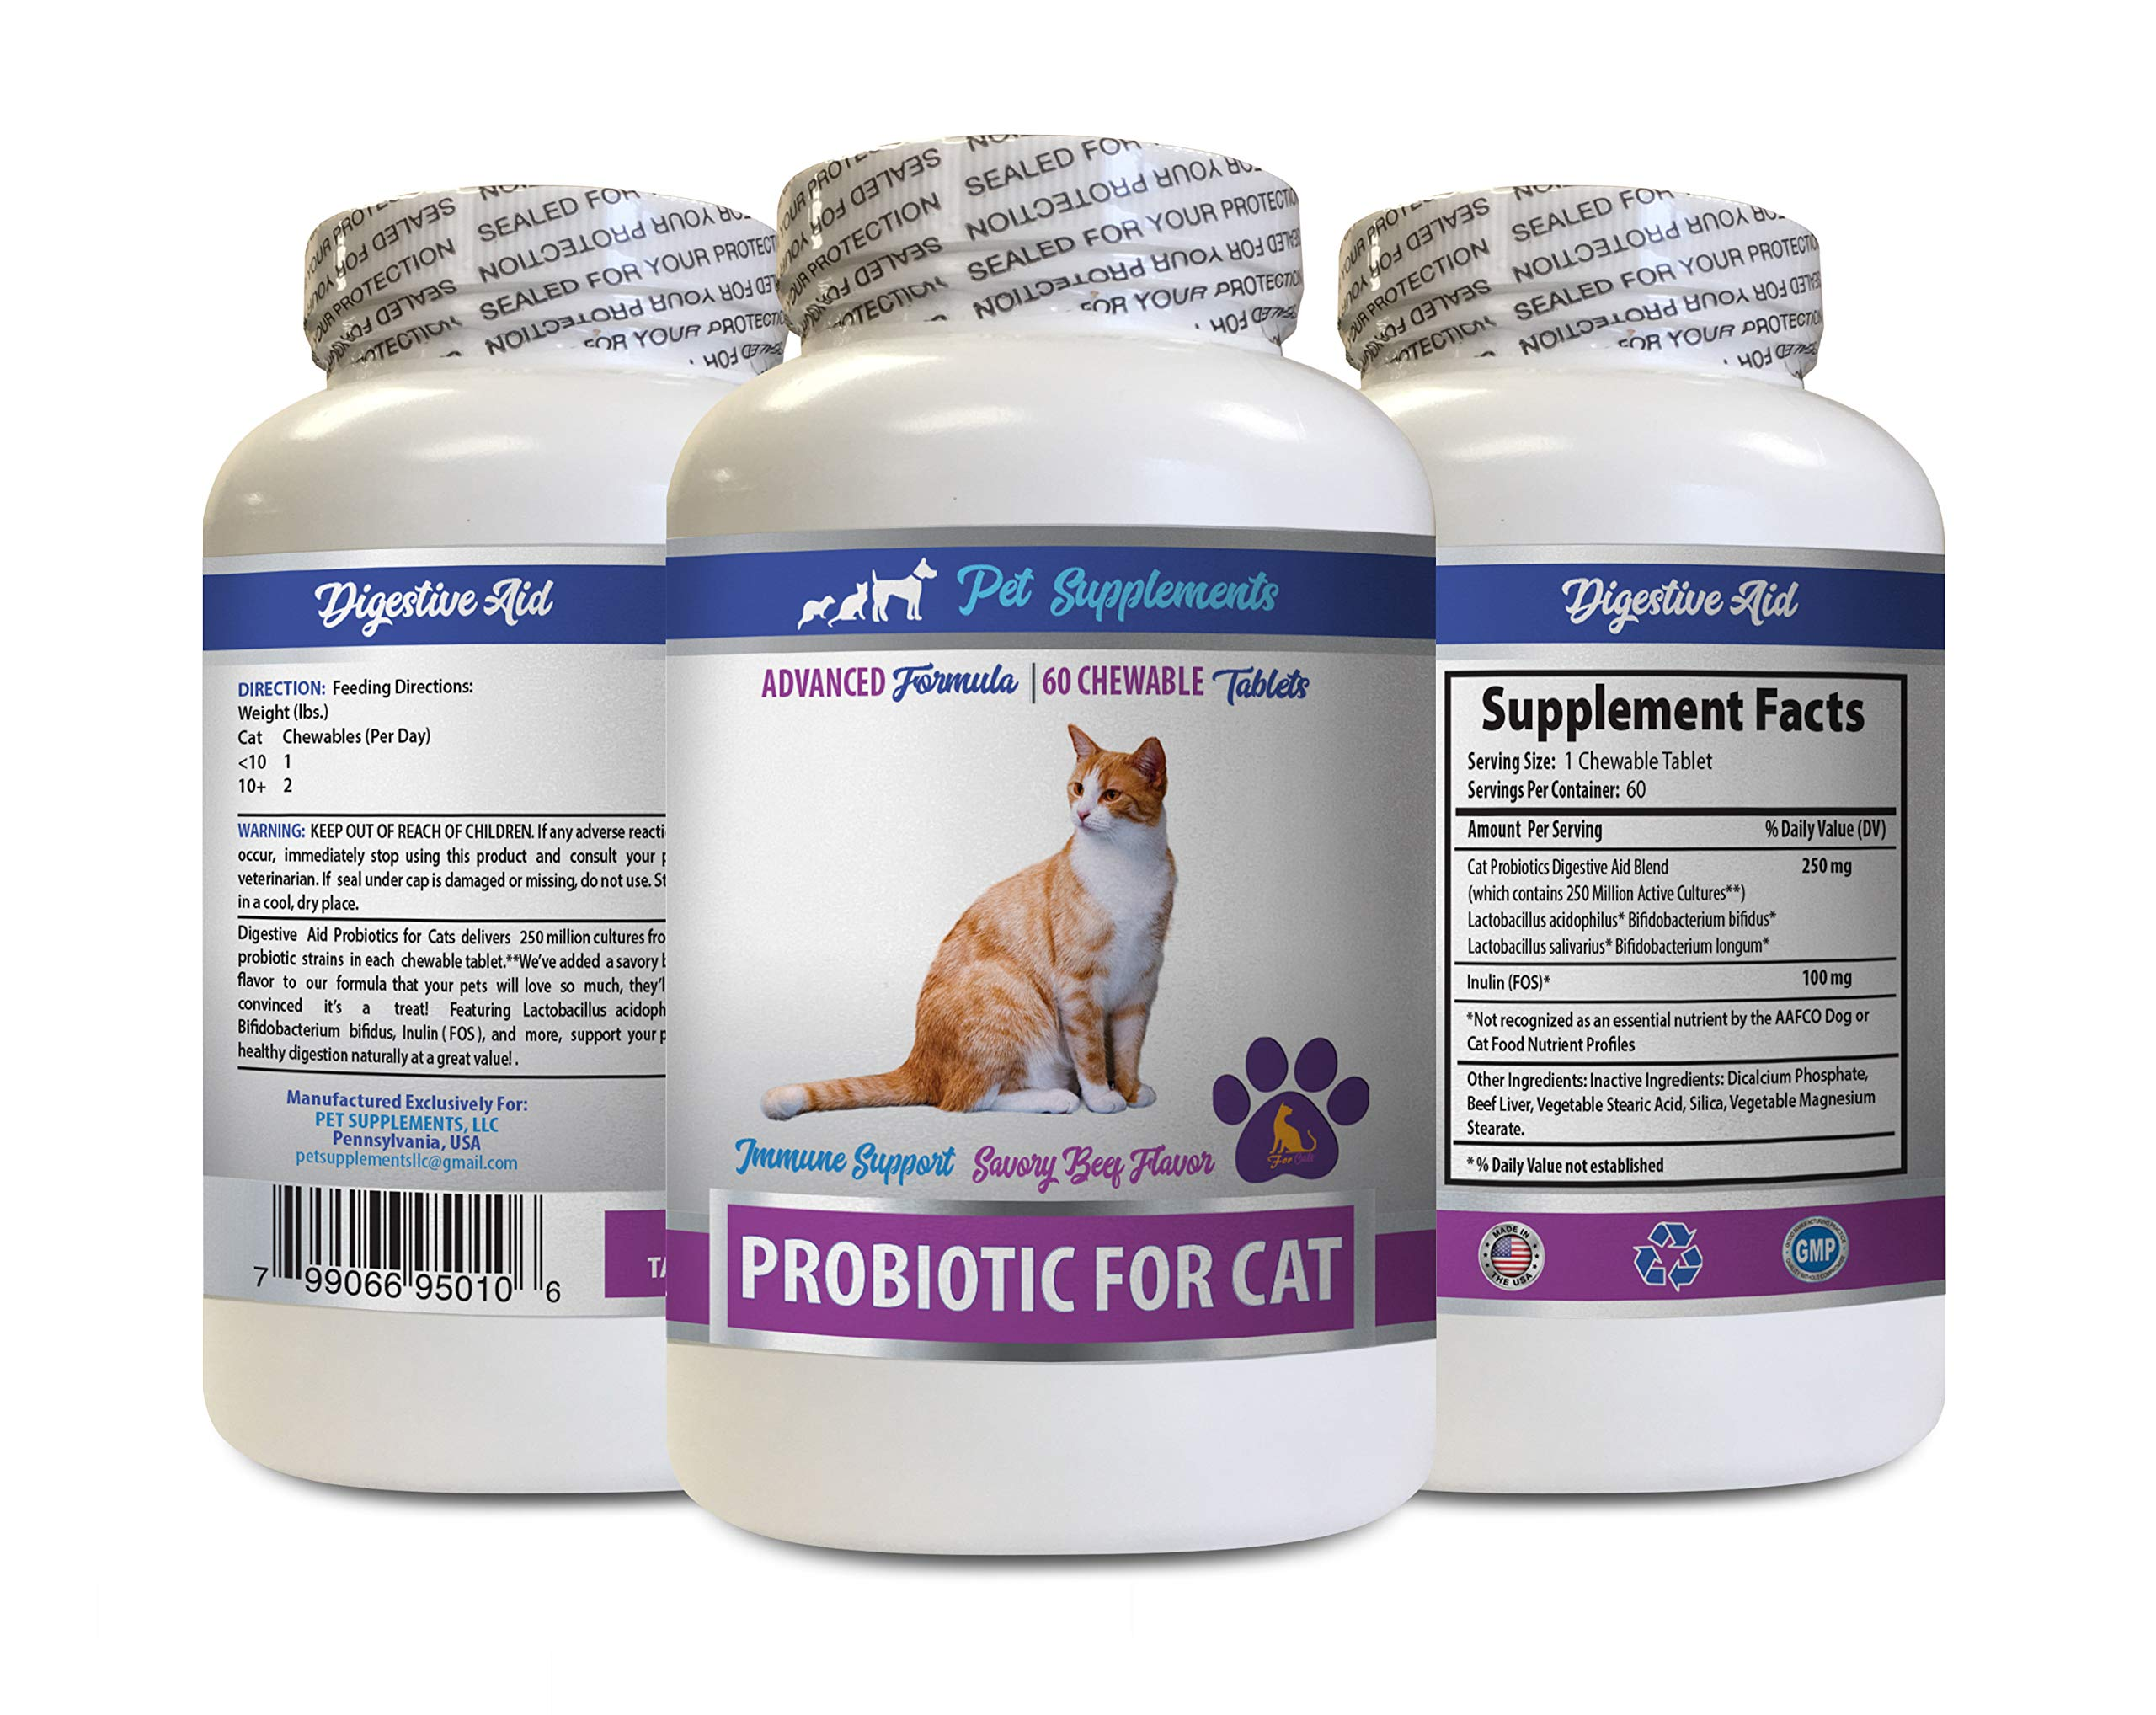 PET SUPPLEMENTS cat Bad Breath Treats - CAT PROBIOTIS - Immune Support - Savory Beef Flavor - Natural Formula - Best probiotics for Cats - 1 Bottle (60 Treats) by PET SUPPLEMENTS